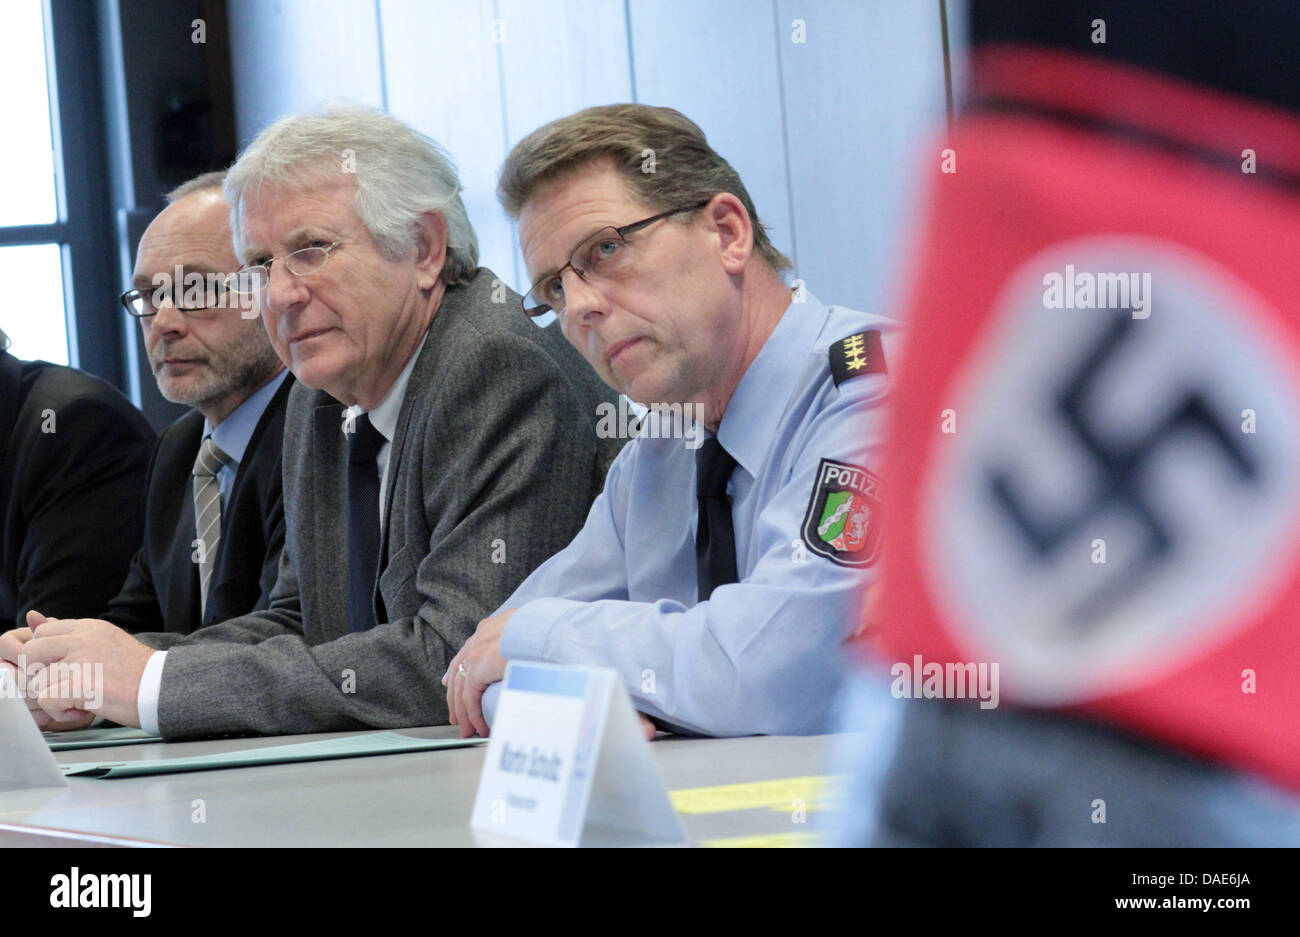 Public prosecutor Christoph Mackel (L-R), Erwin Suedfeld, Chief of Police in Bielefeld, and Uwe Floess, chief of - Stock Image